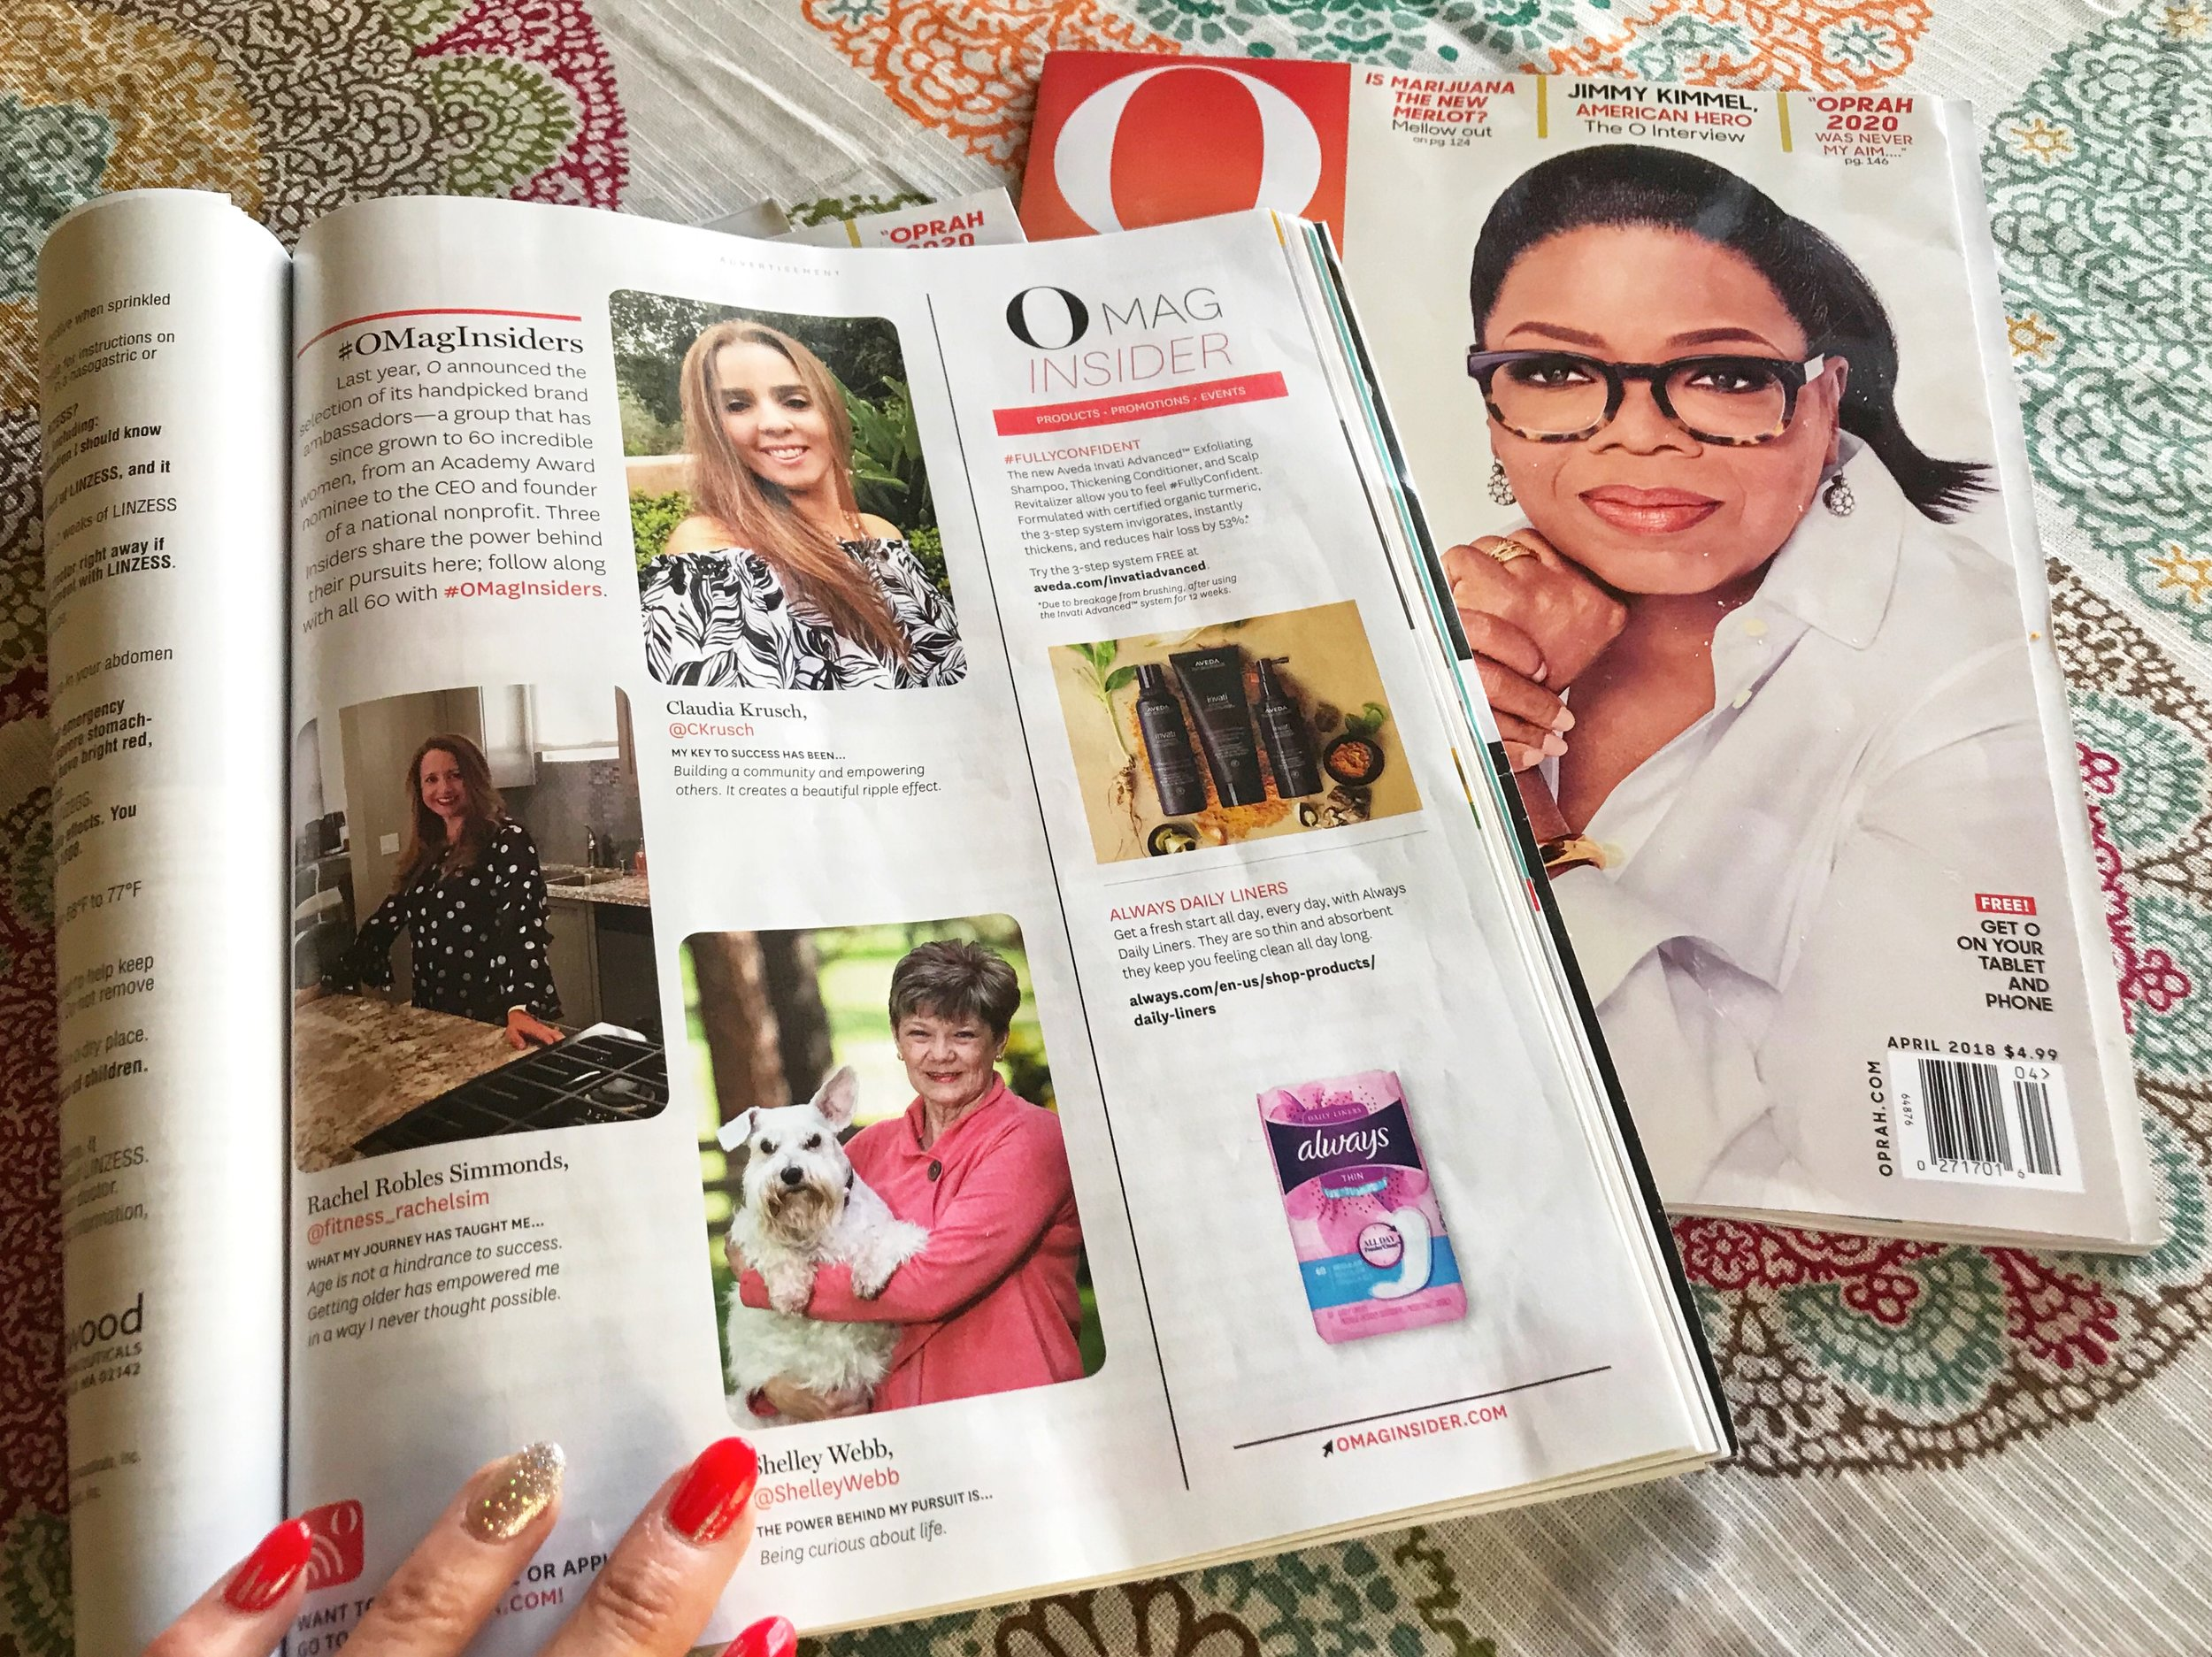 """I received this feature in the magazine for my influence in regards to the O Mag Insiders, brand ambassadors for O, The Oprah Magazine. Her """"posts are the best in the business, driving real engagement and awareness for the group""""."""